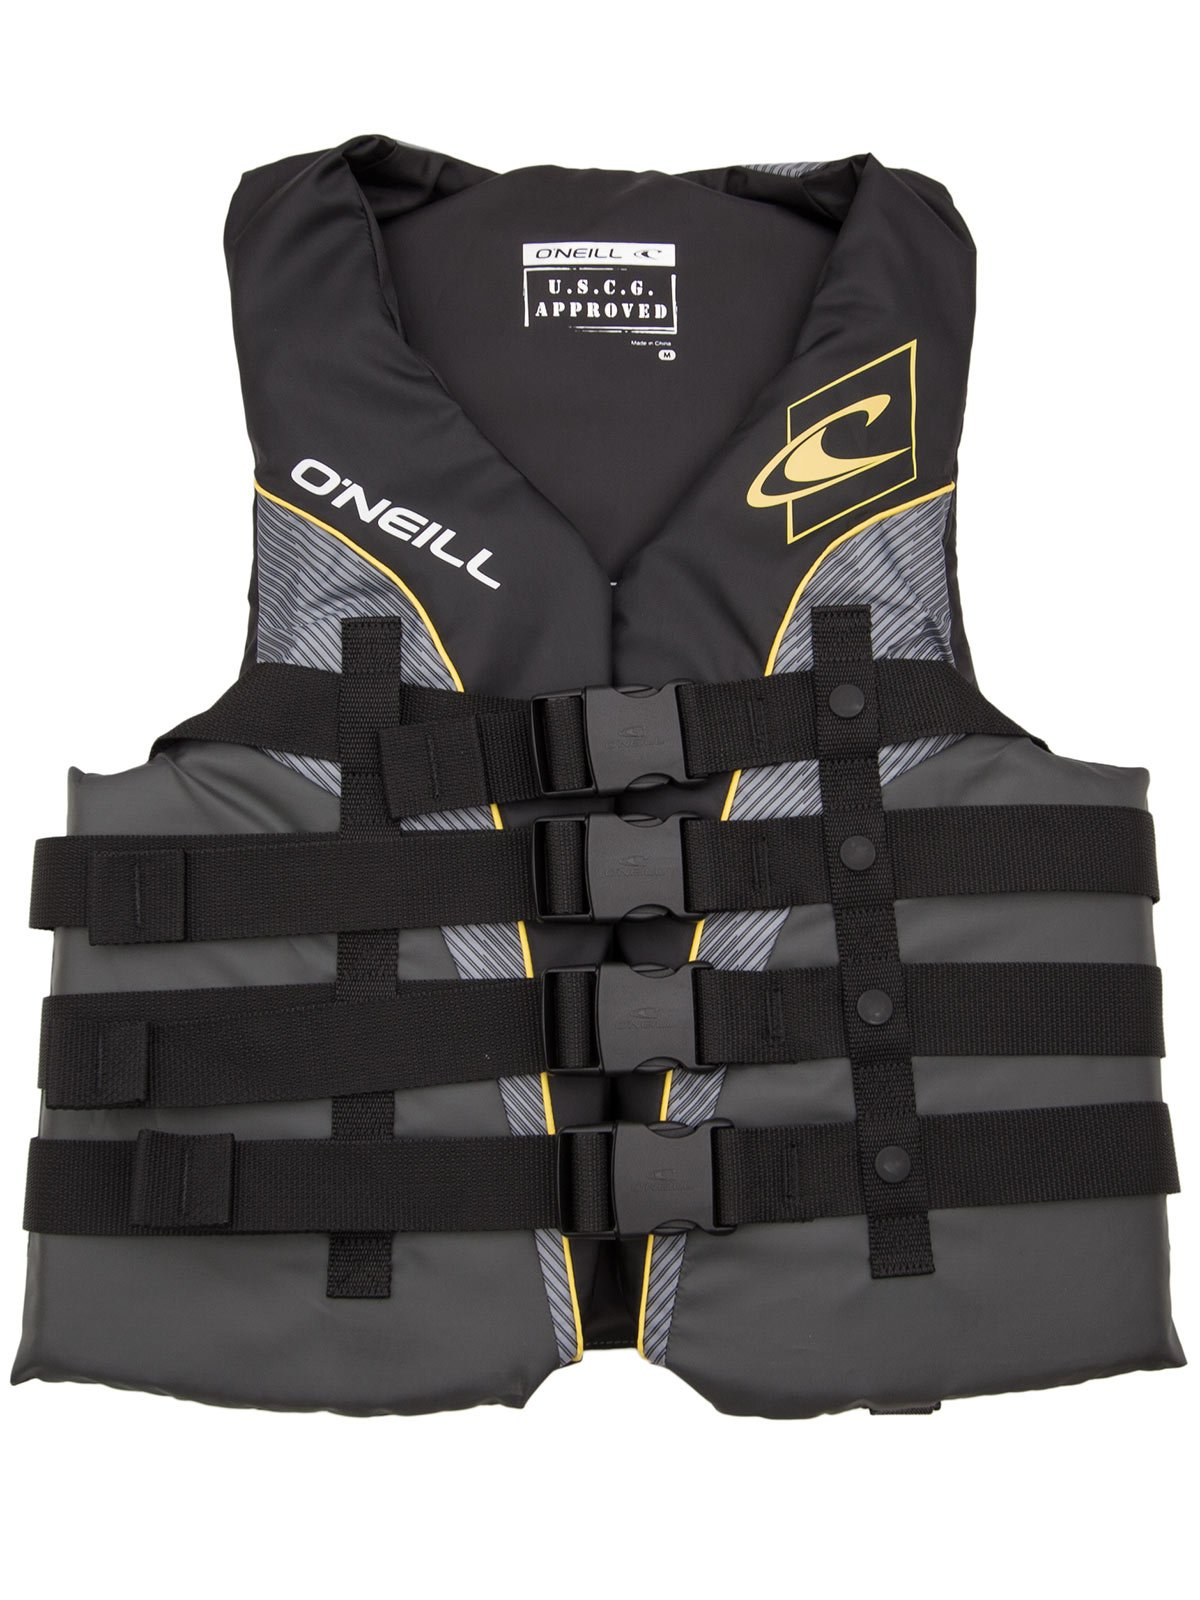 O'Neill Mens Superlite USCG Life Vest M Black/Graphite/Smoke/Yellow (4723) by O'Neill (Image #1)